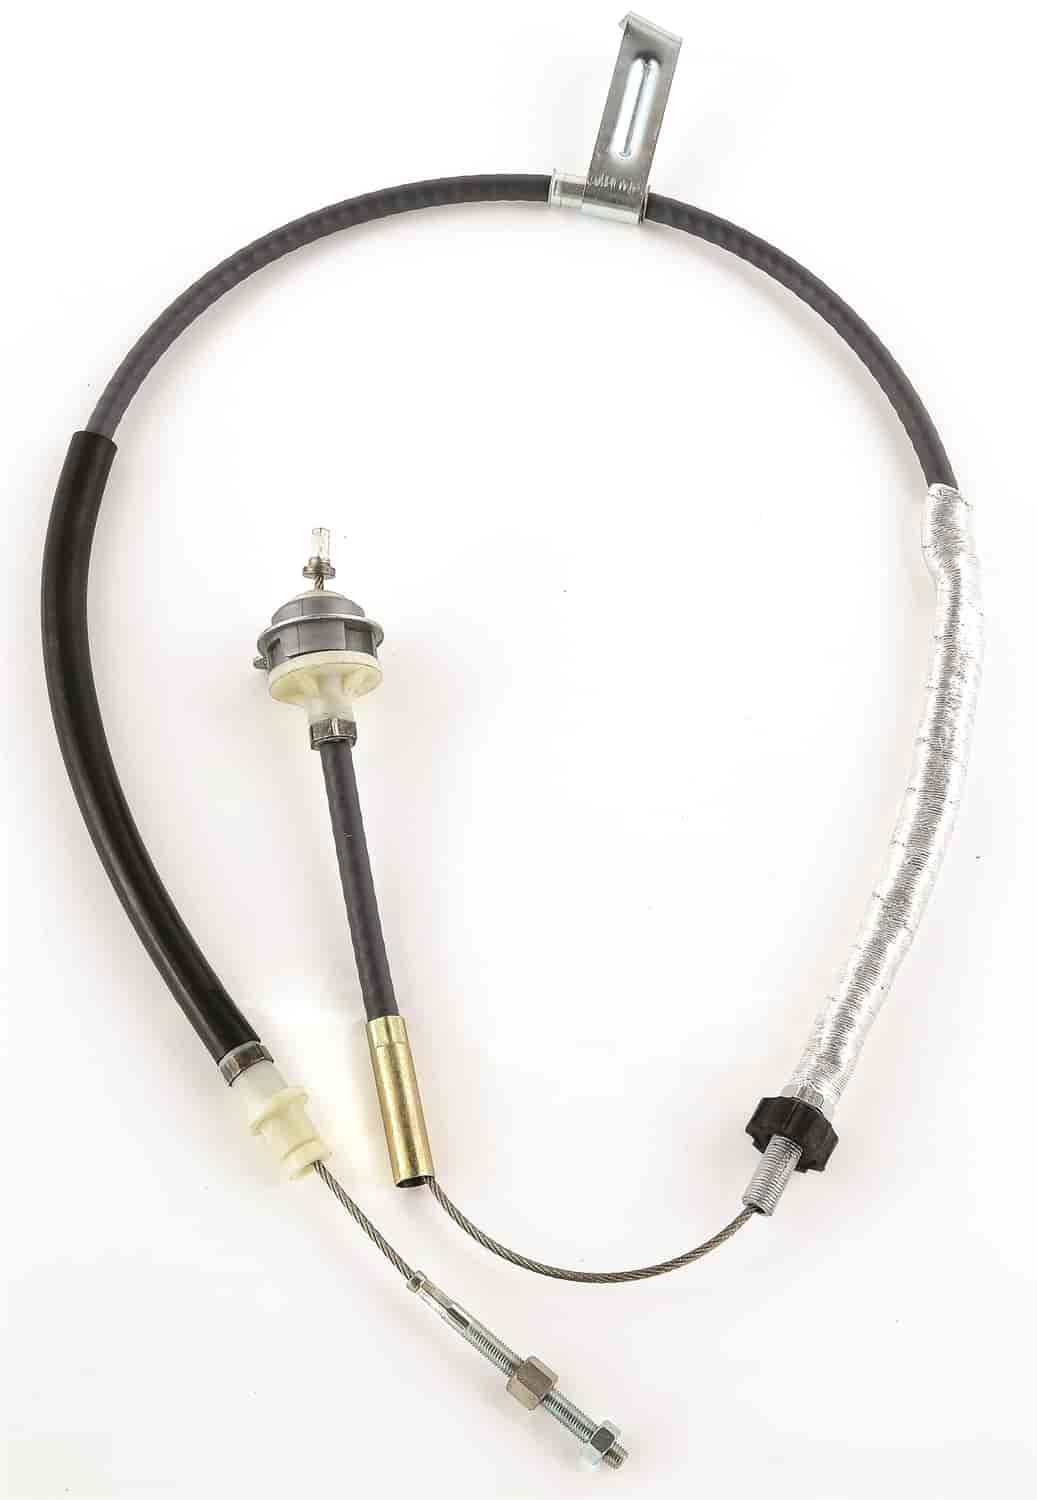 JEGS Performance Products 60149 - JEGS Heavy-Duty Adjustable Clutch Cable for 1979-95 Mustang